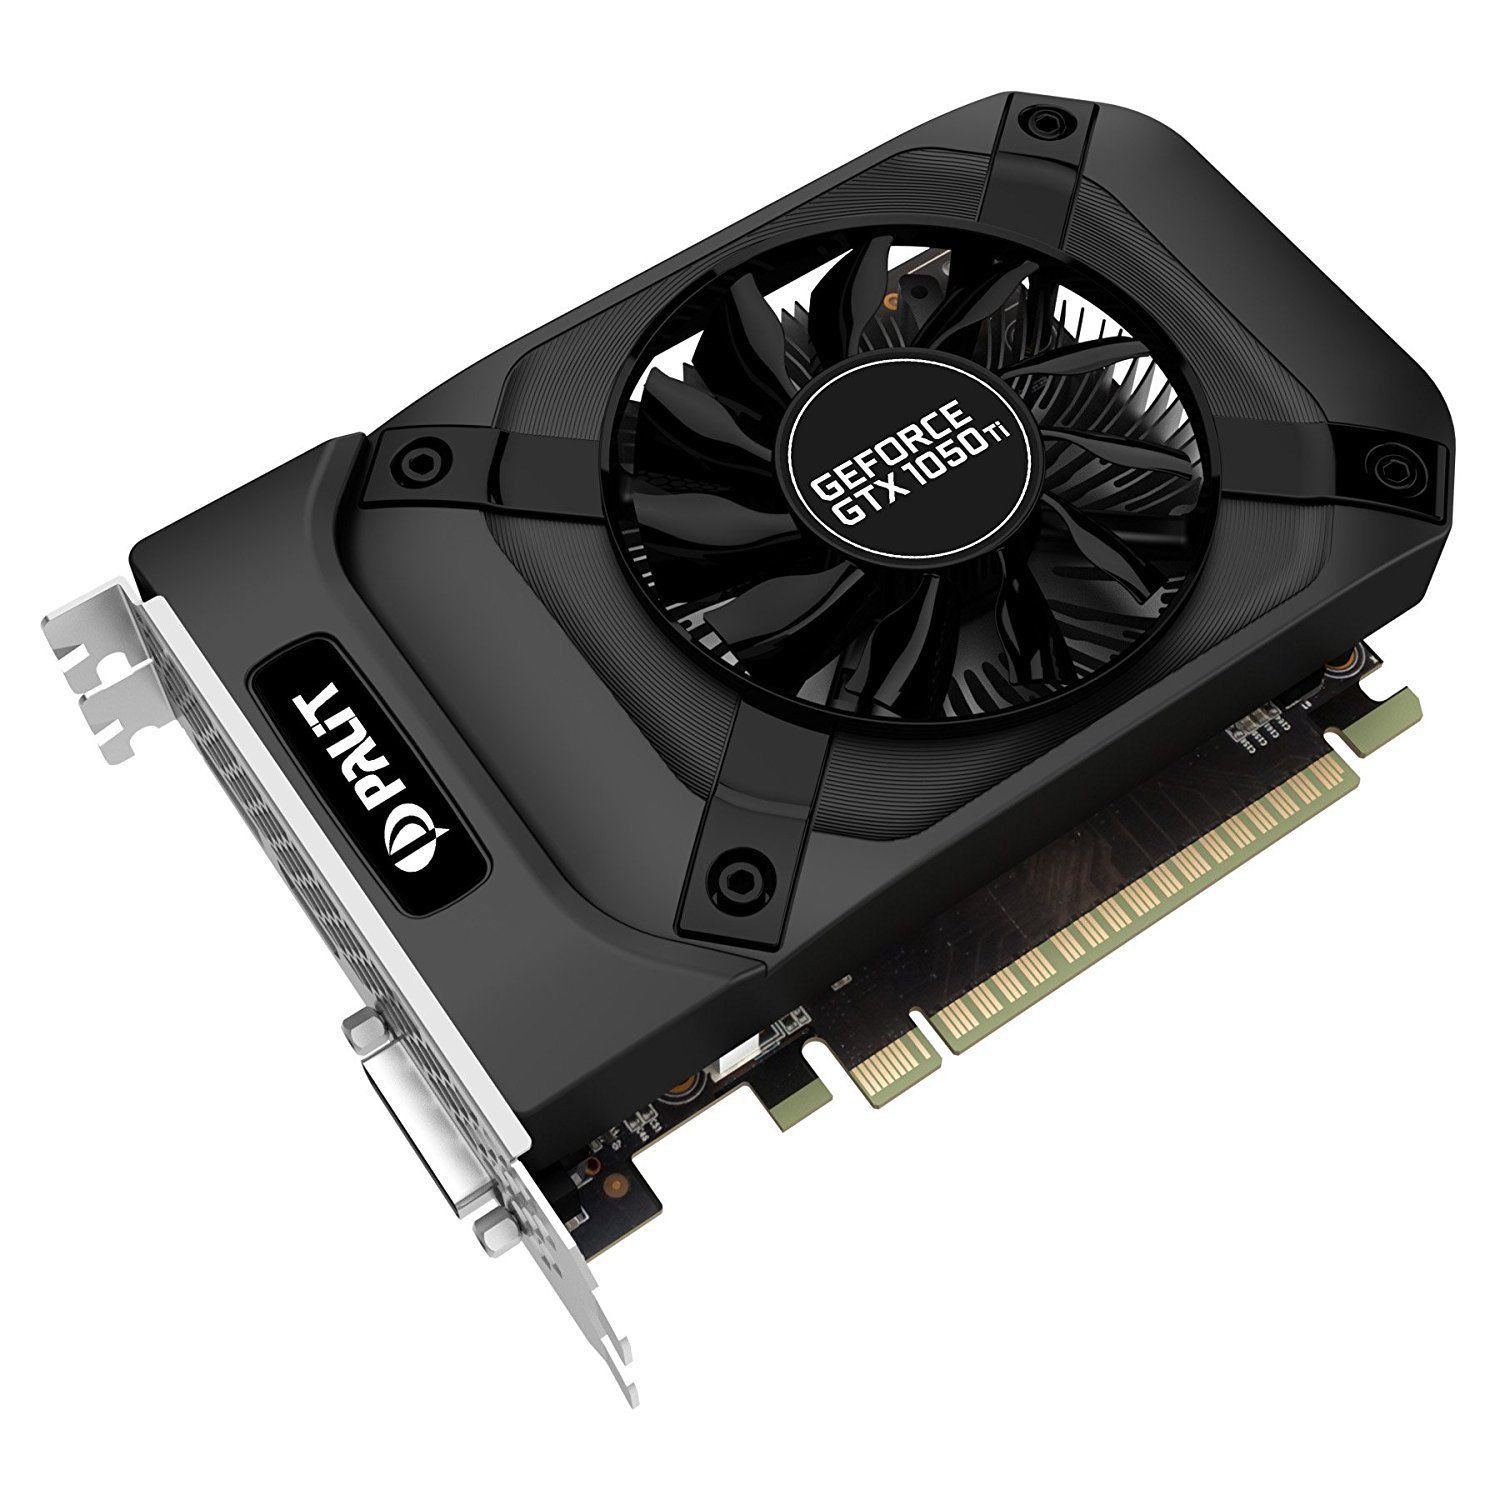 Видеокарта GeForce GTX1050 2Gb GDDR5 (Palit) (NE5105001841-1070F) box